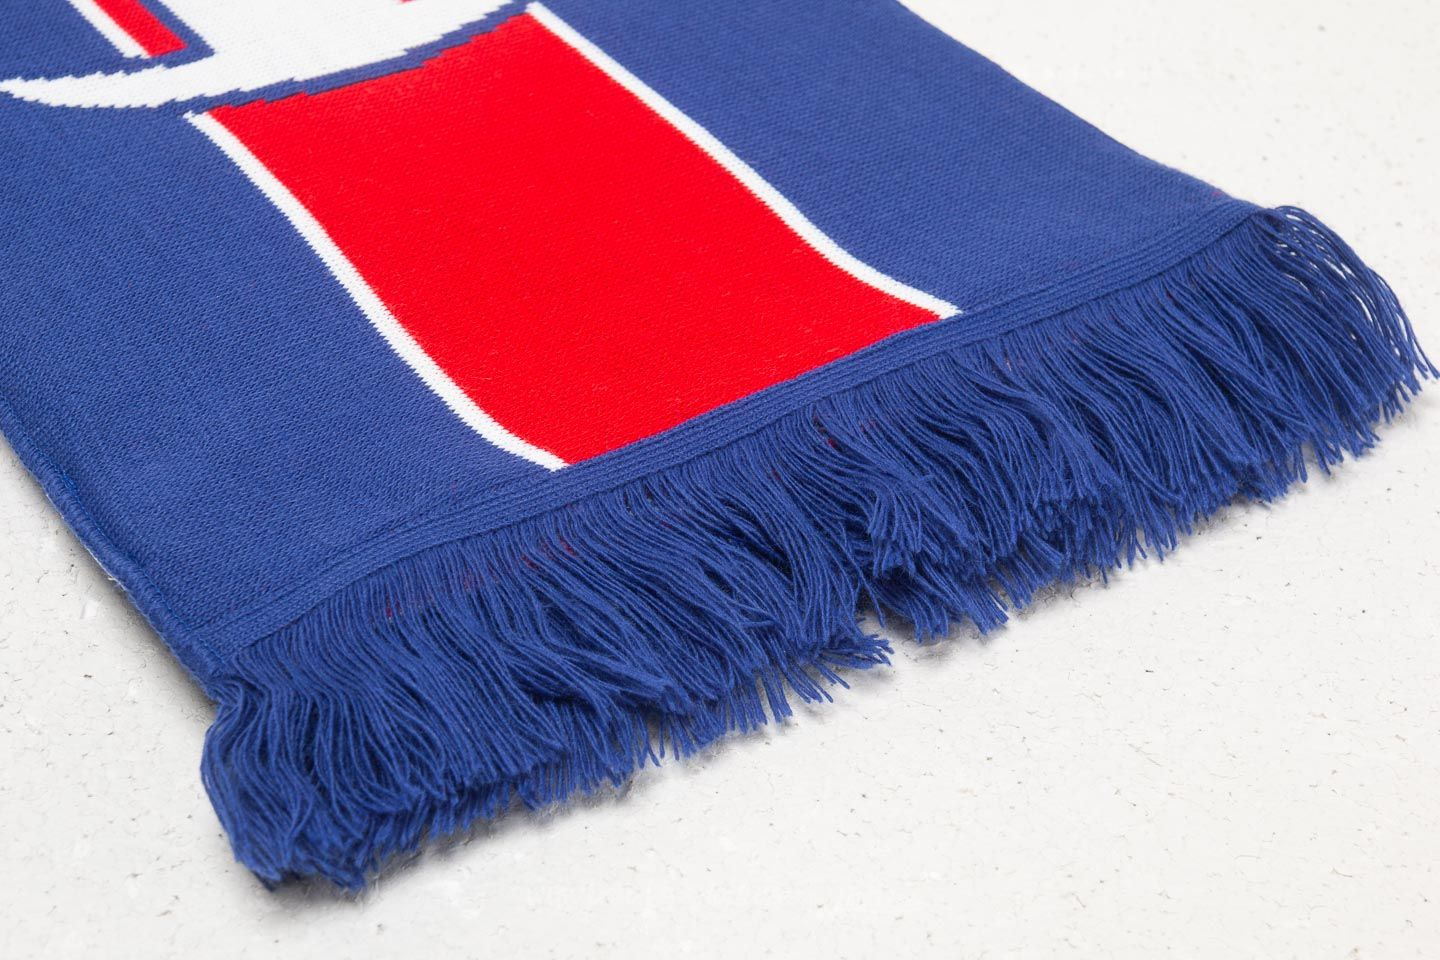 Champion Knitted Scarf Blue  Red  White at a great price £23 buy at 1b9682e4fd0a4